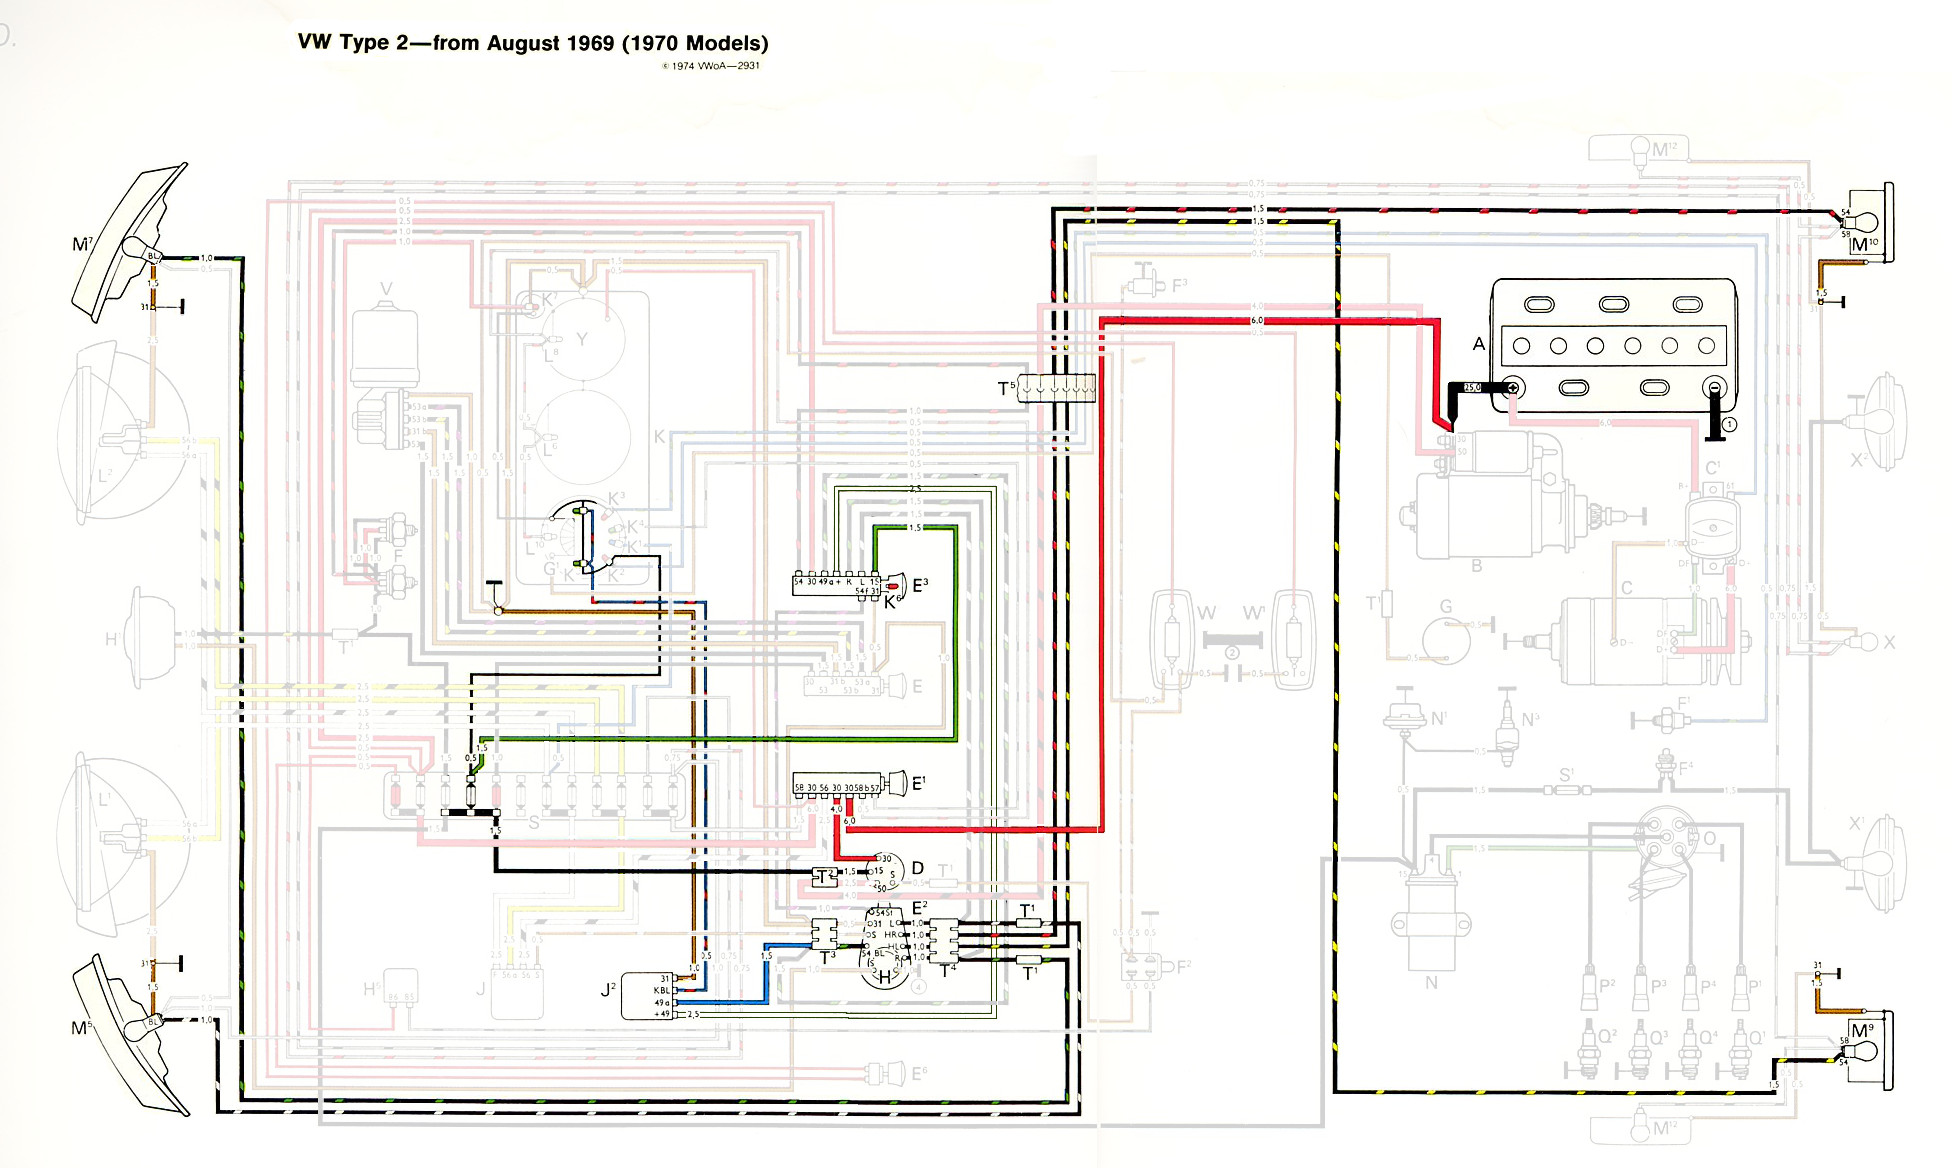 1970bus_signals thesamba com type 2 wiring diagrams Basic Turn Signal Wiring Diagram at crackthecode.co